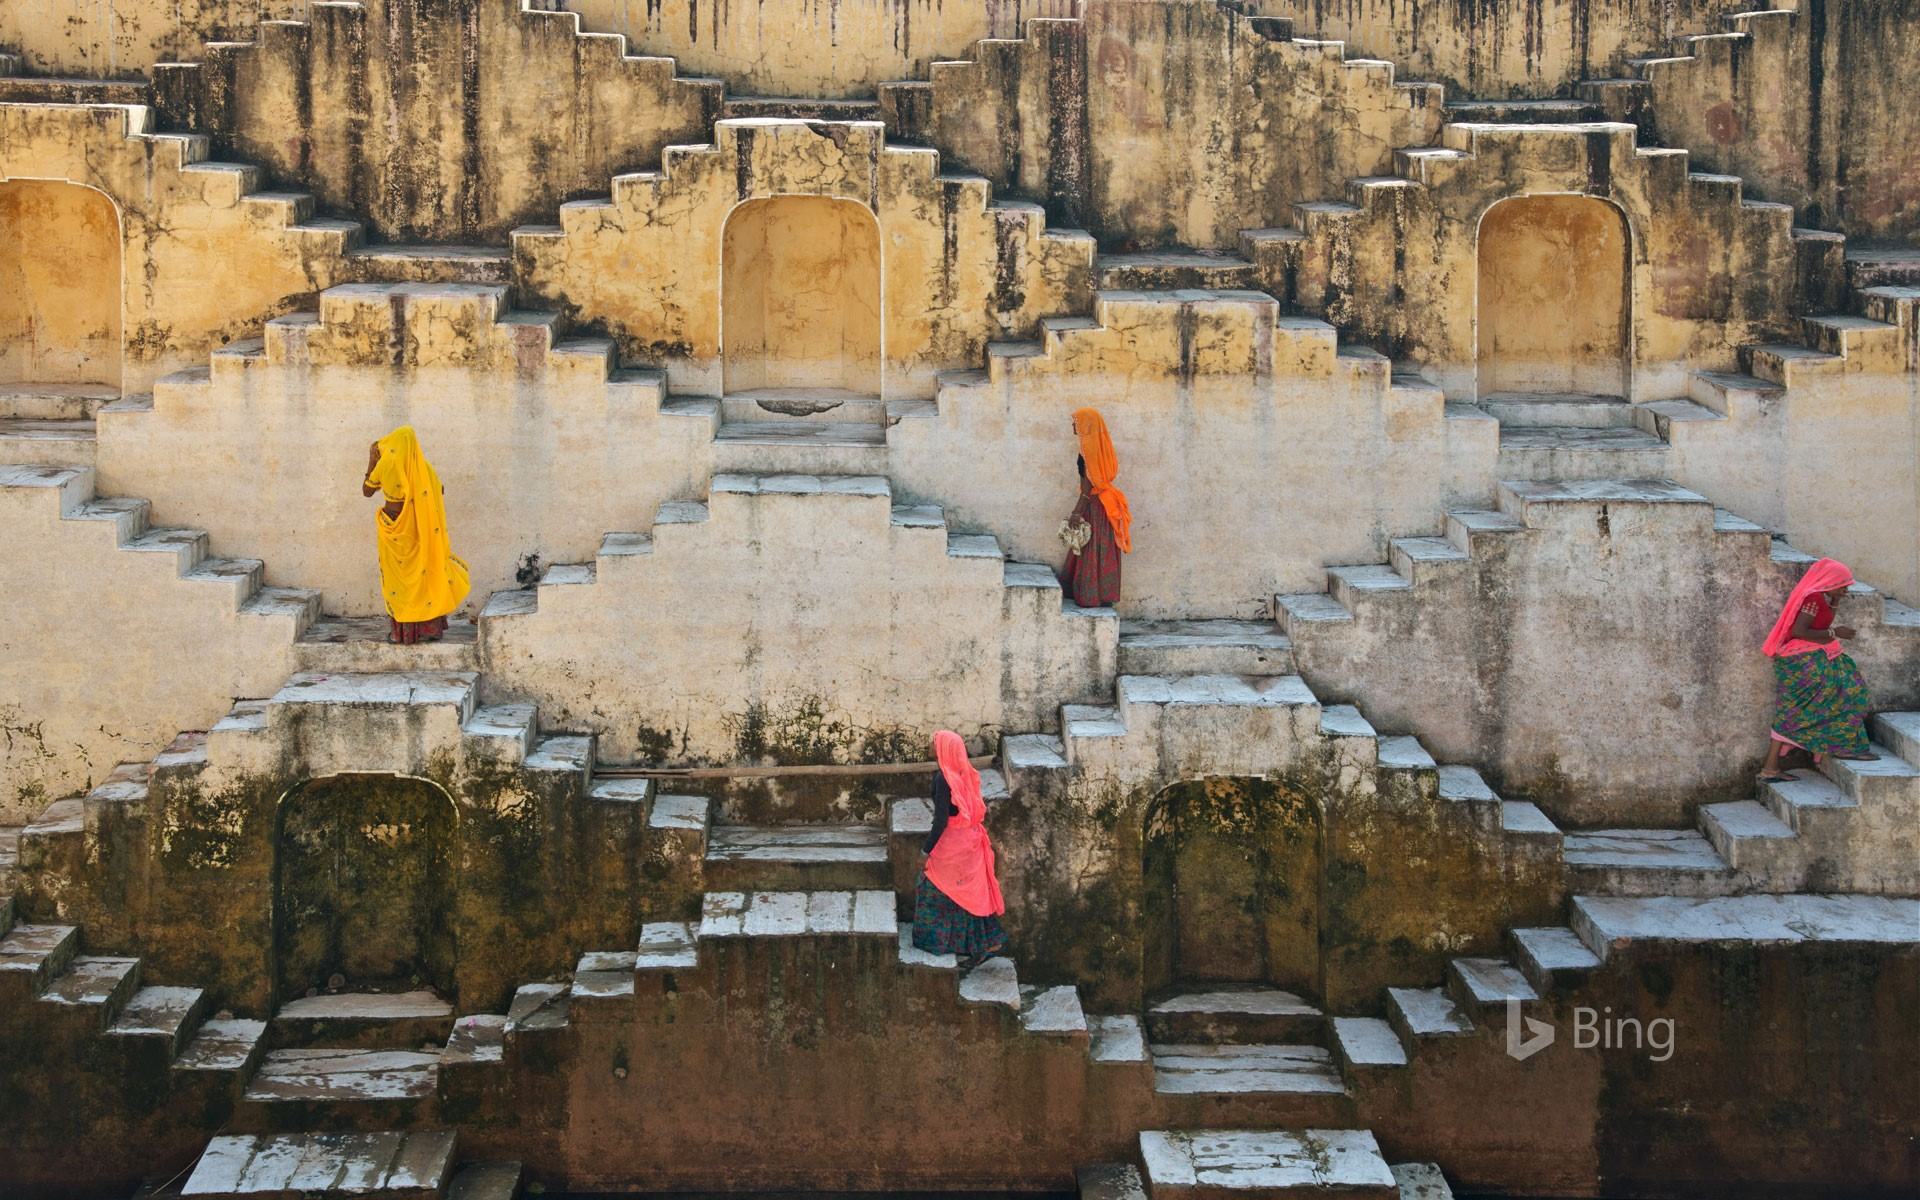 Women climbing a stepwell near Amber Fort in Jaipur, Rajasthan, India